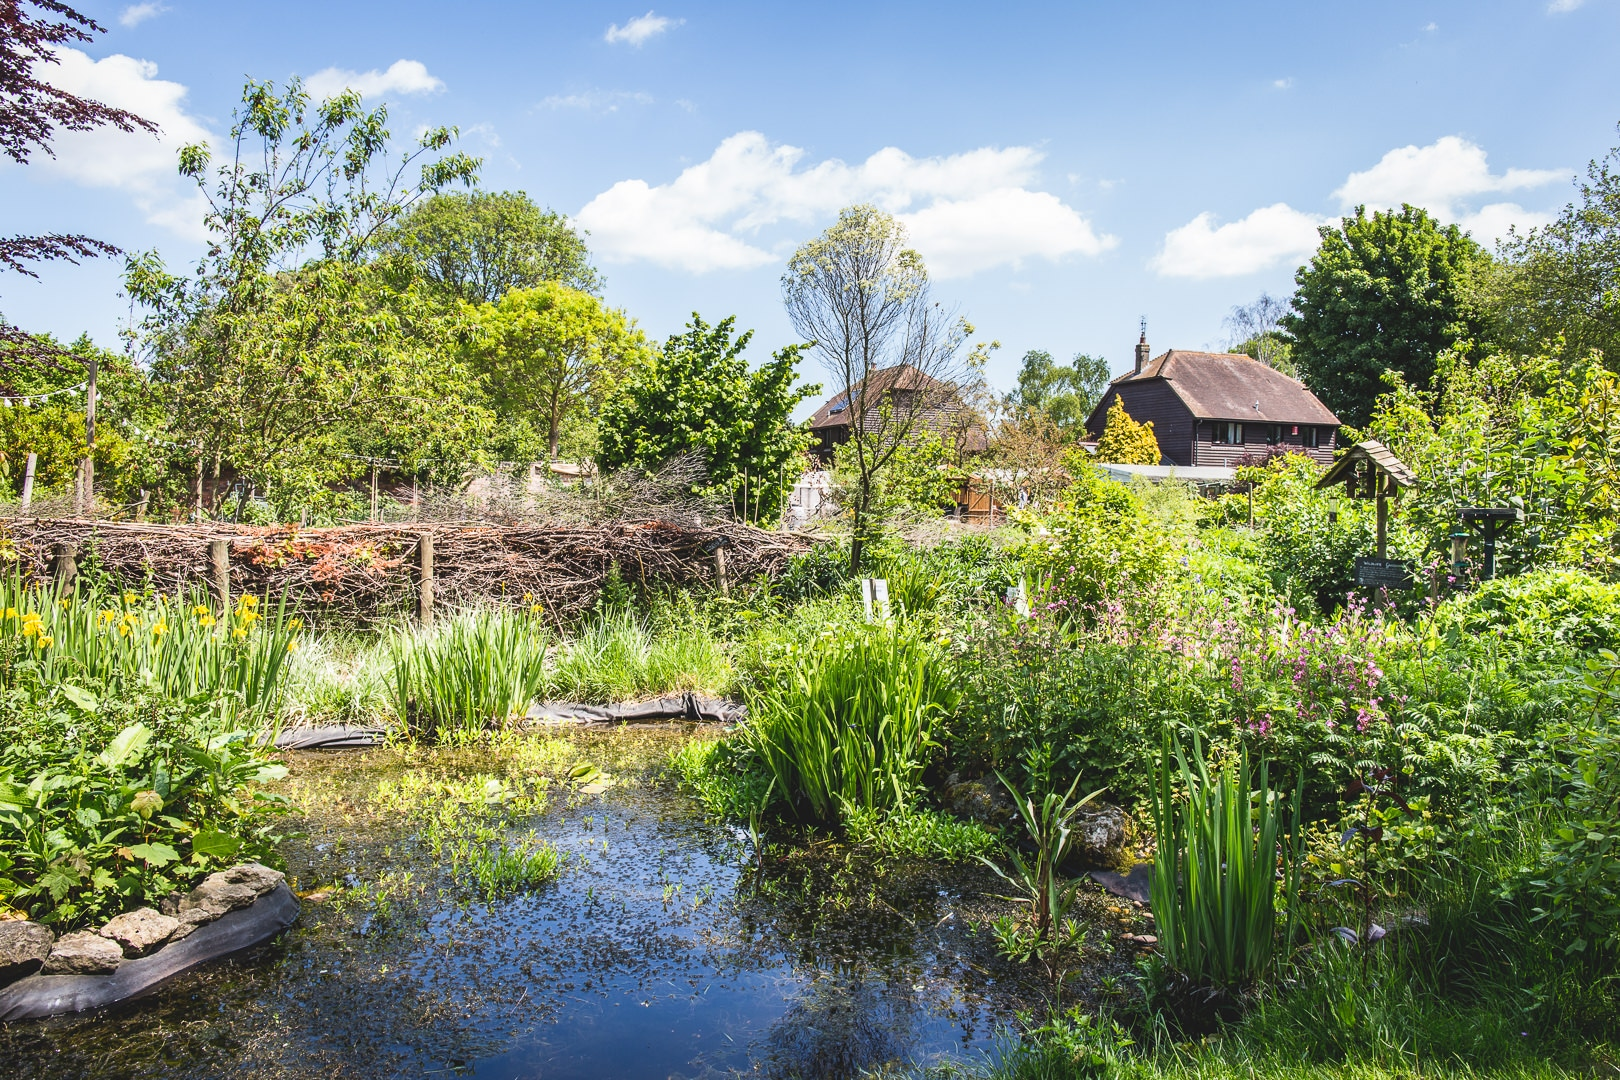 The pond at the abbey physic community garden in Faversham, photographed by documentary photographer Simon Hawkins